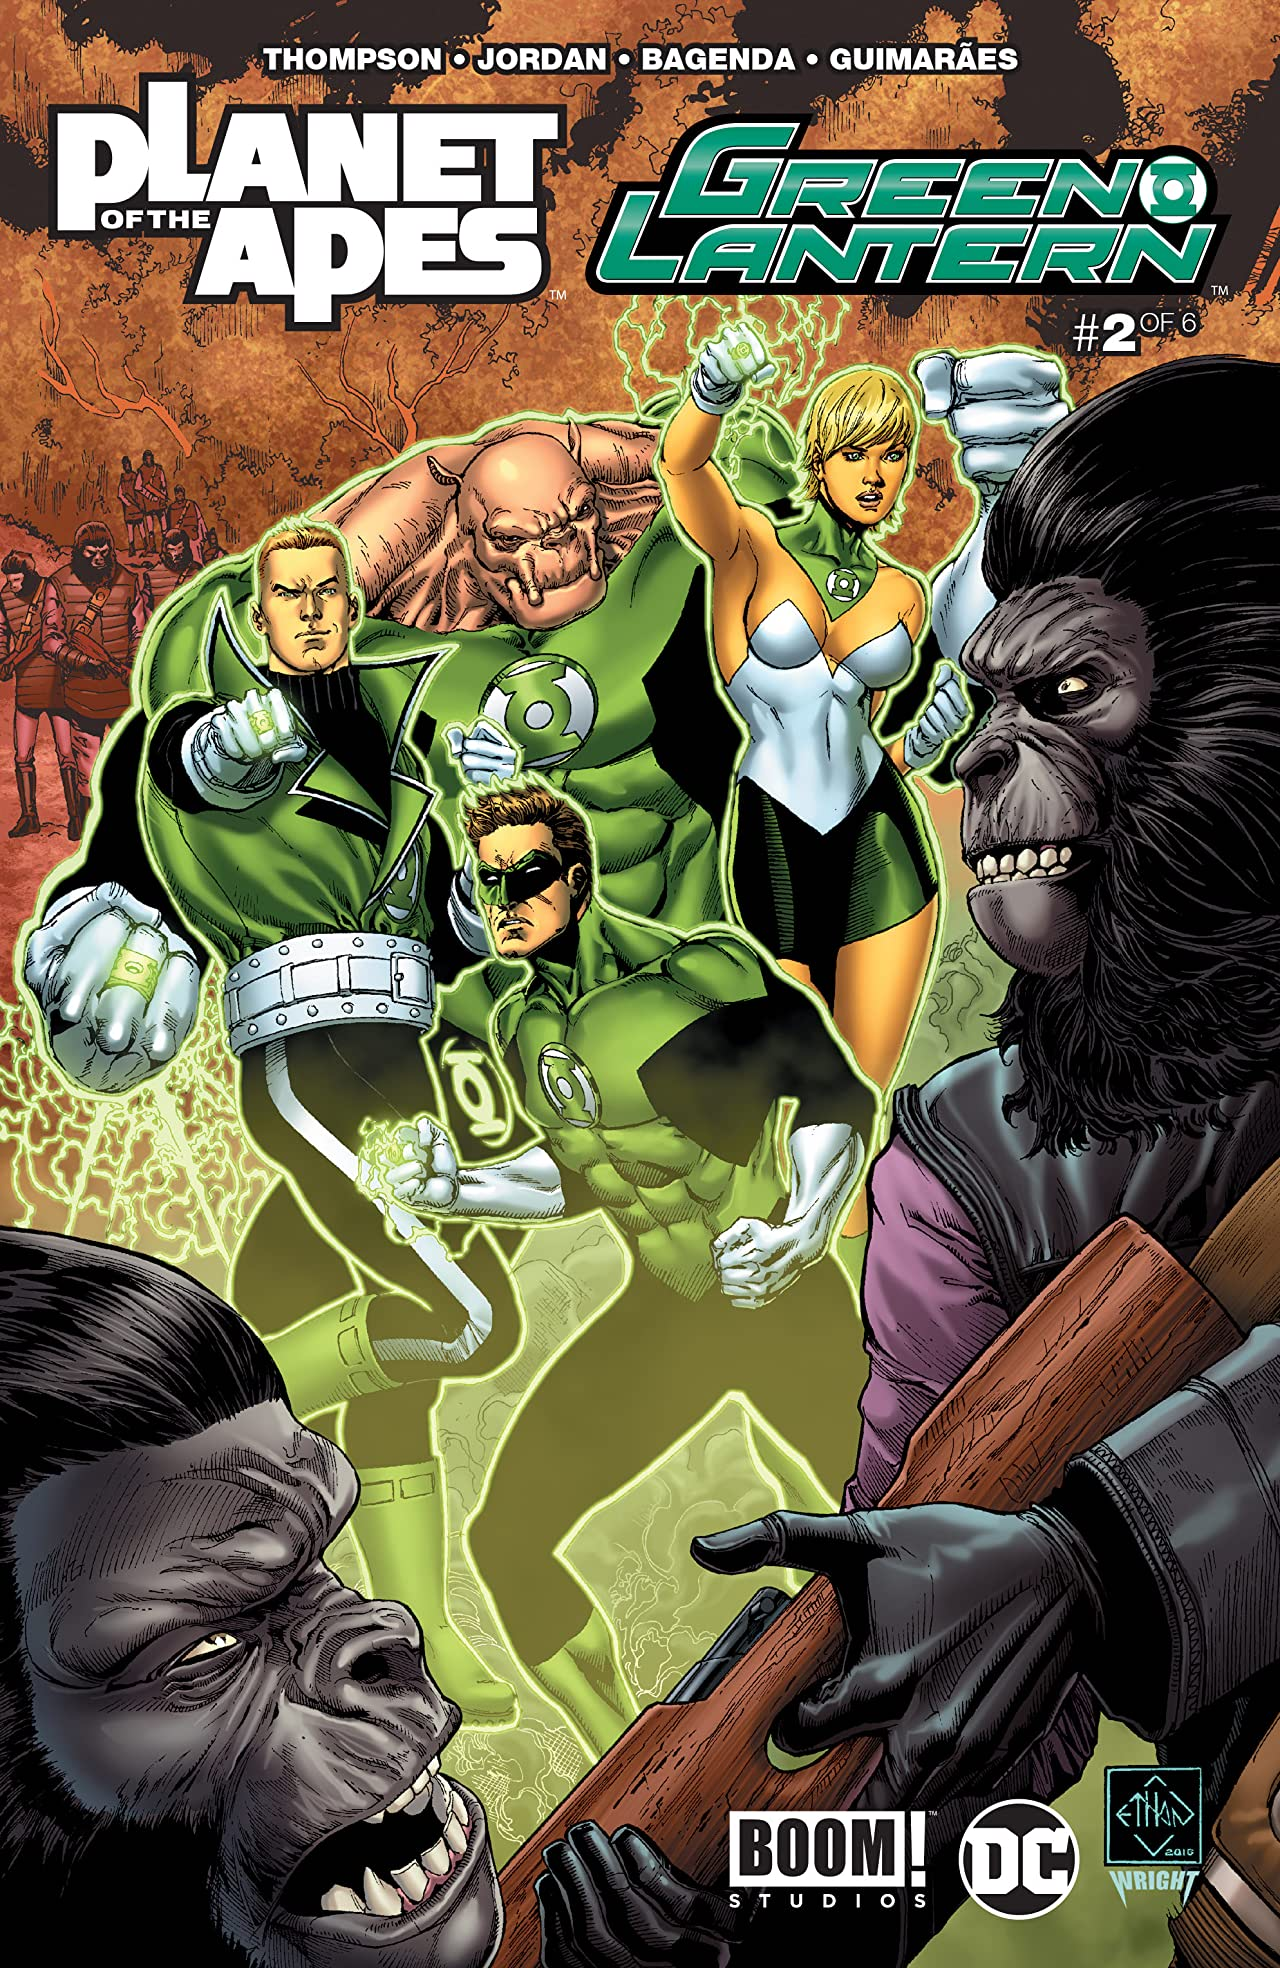 Planet of the Apes/Green Lantern #2 (of 6)